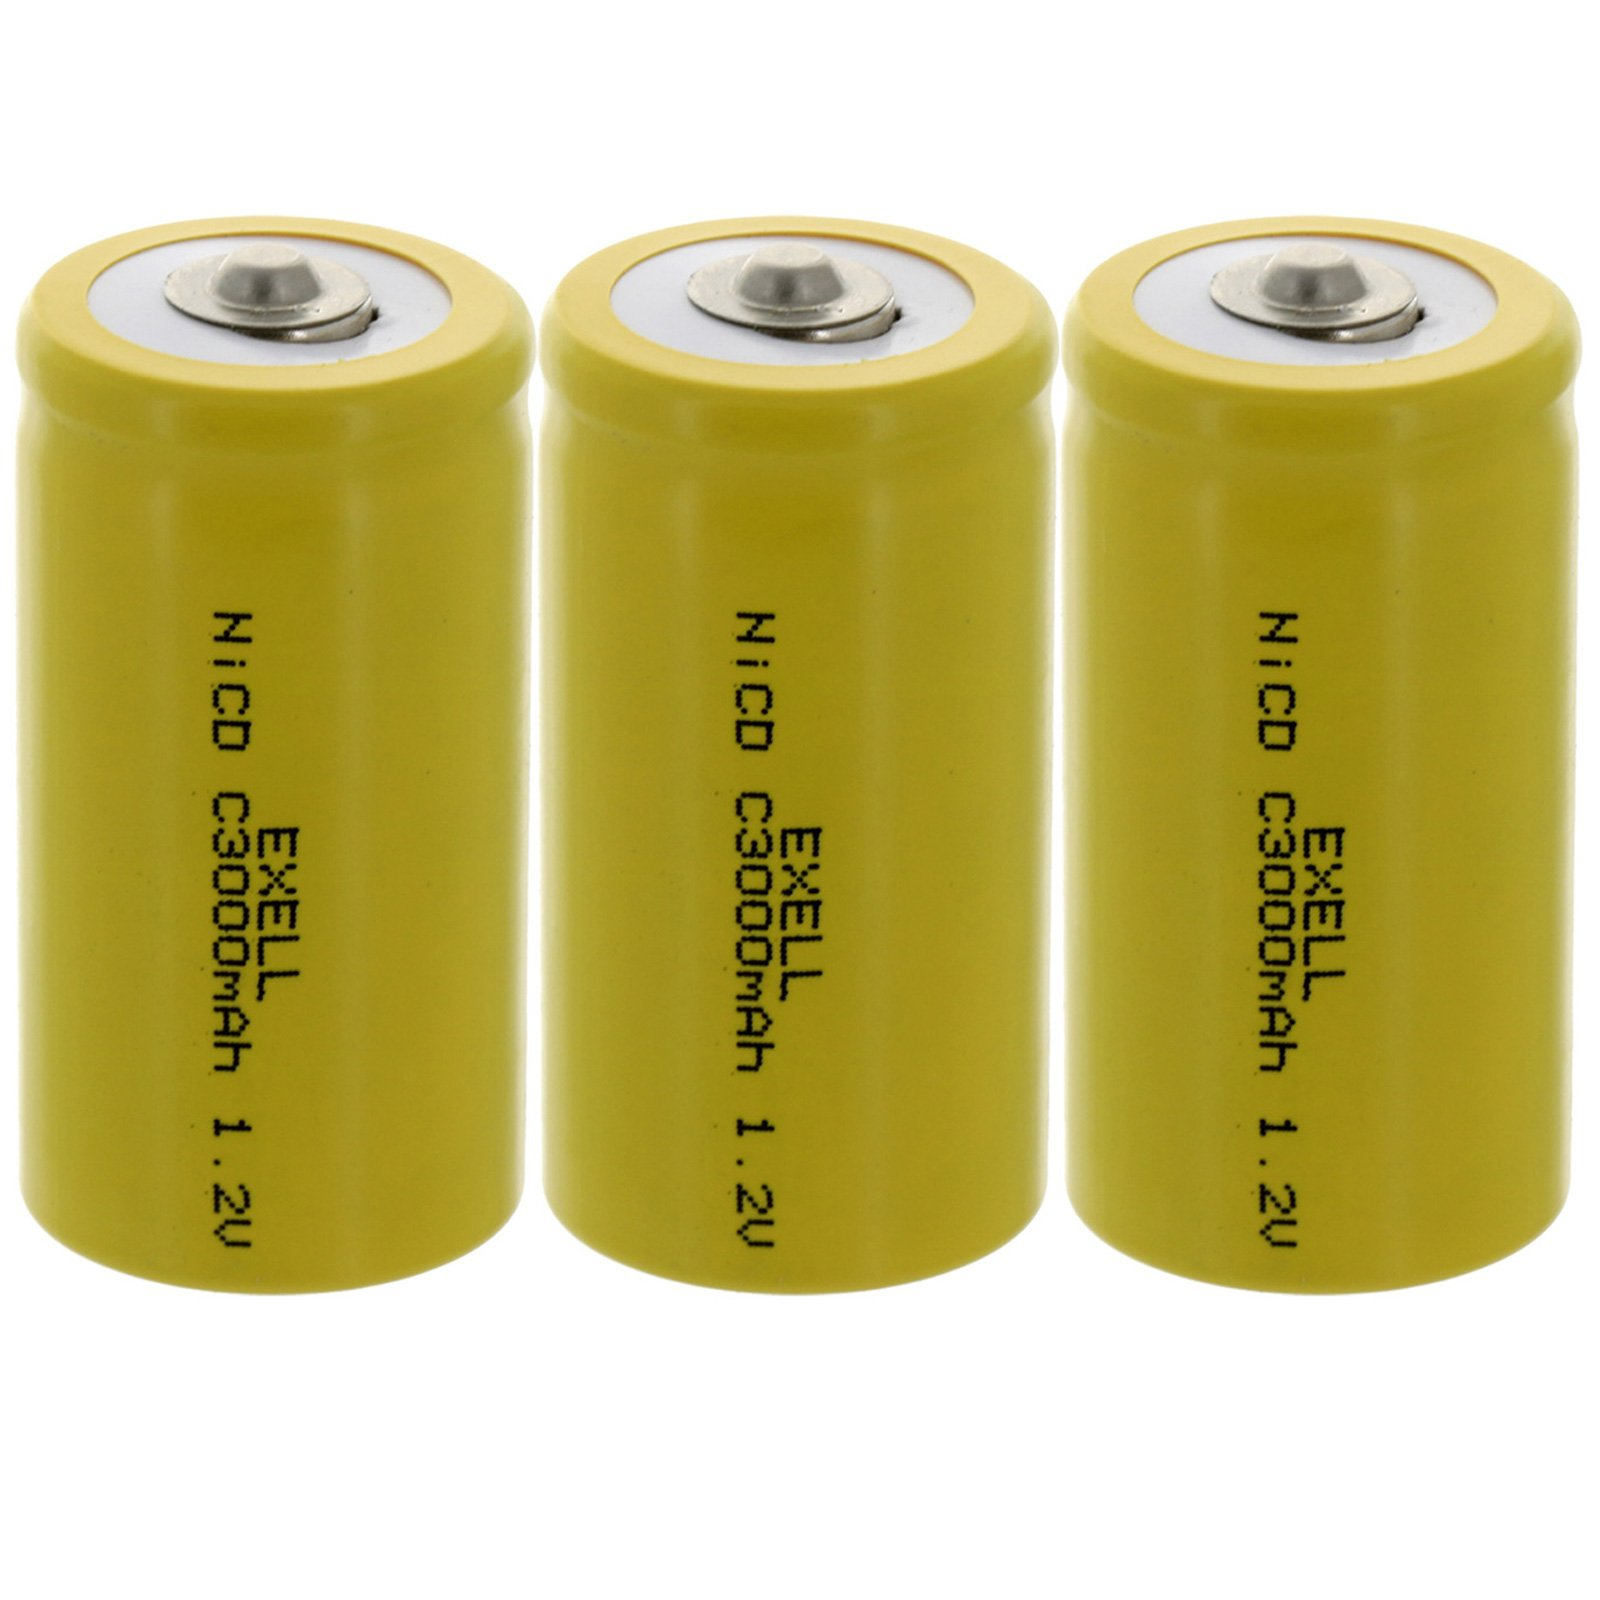 (3-PACK) Exell C Size 1.2V 3000mAh NiCD Button Top Rechargeable Batteries for medical instruments/equipment, electric razors, toothbrushes, radio controlled devices, electric tools